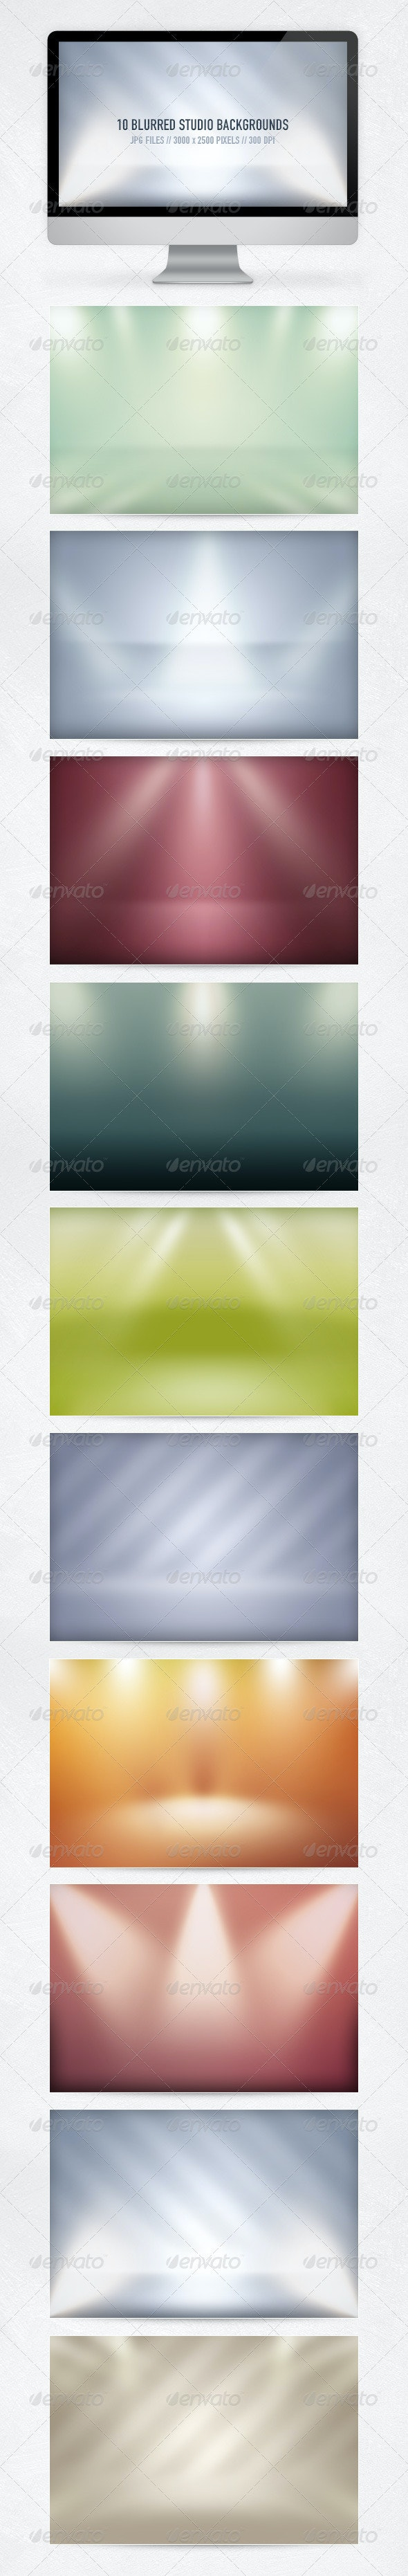 10 Blurred Studio Backgrounds - Abstract Backgrounds